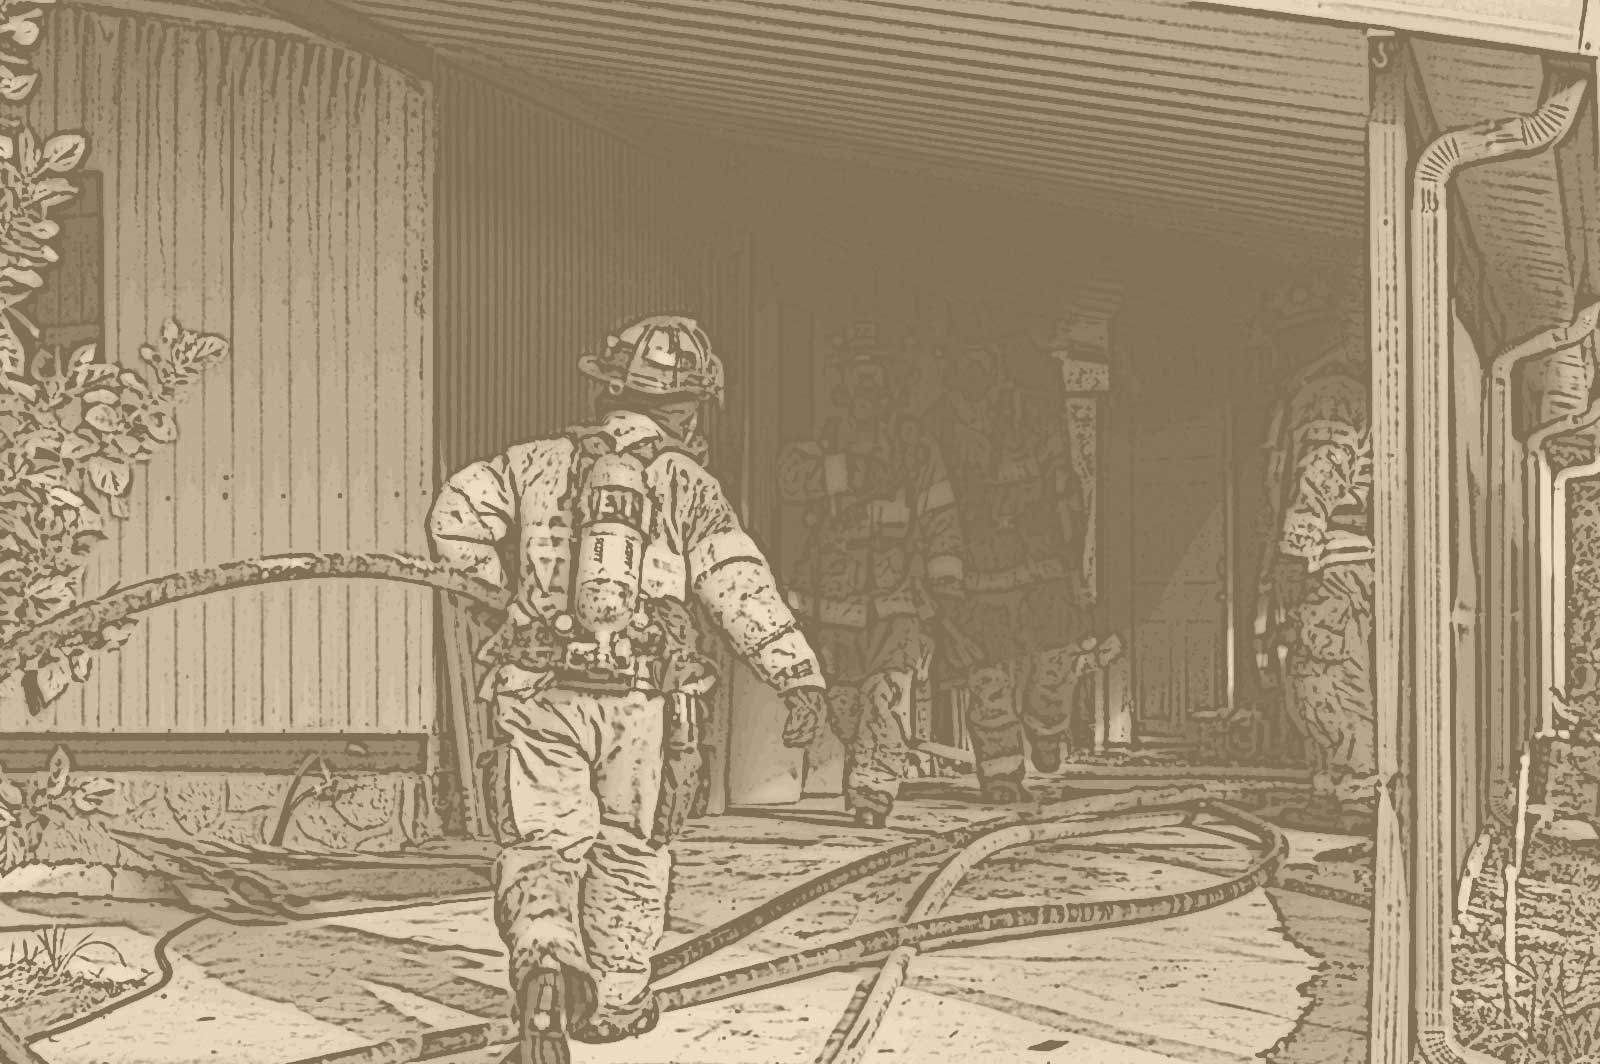 Firefighter advancing a hoseline into a home